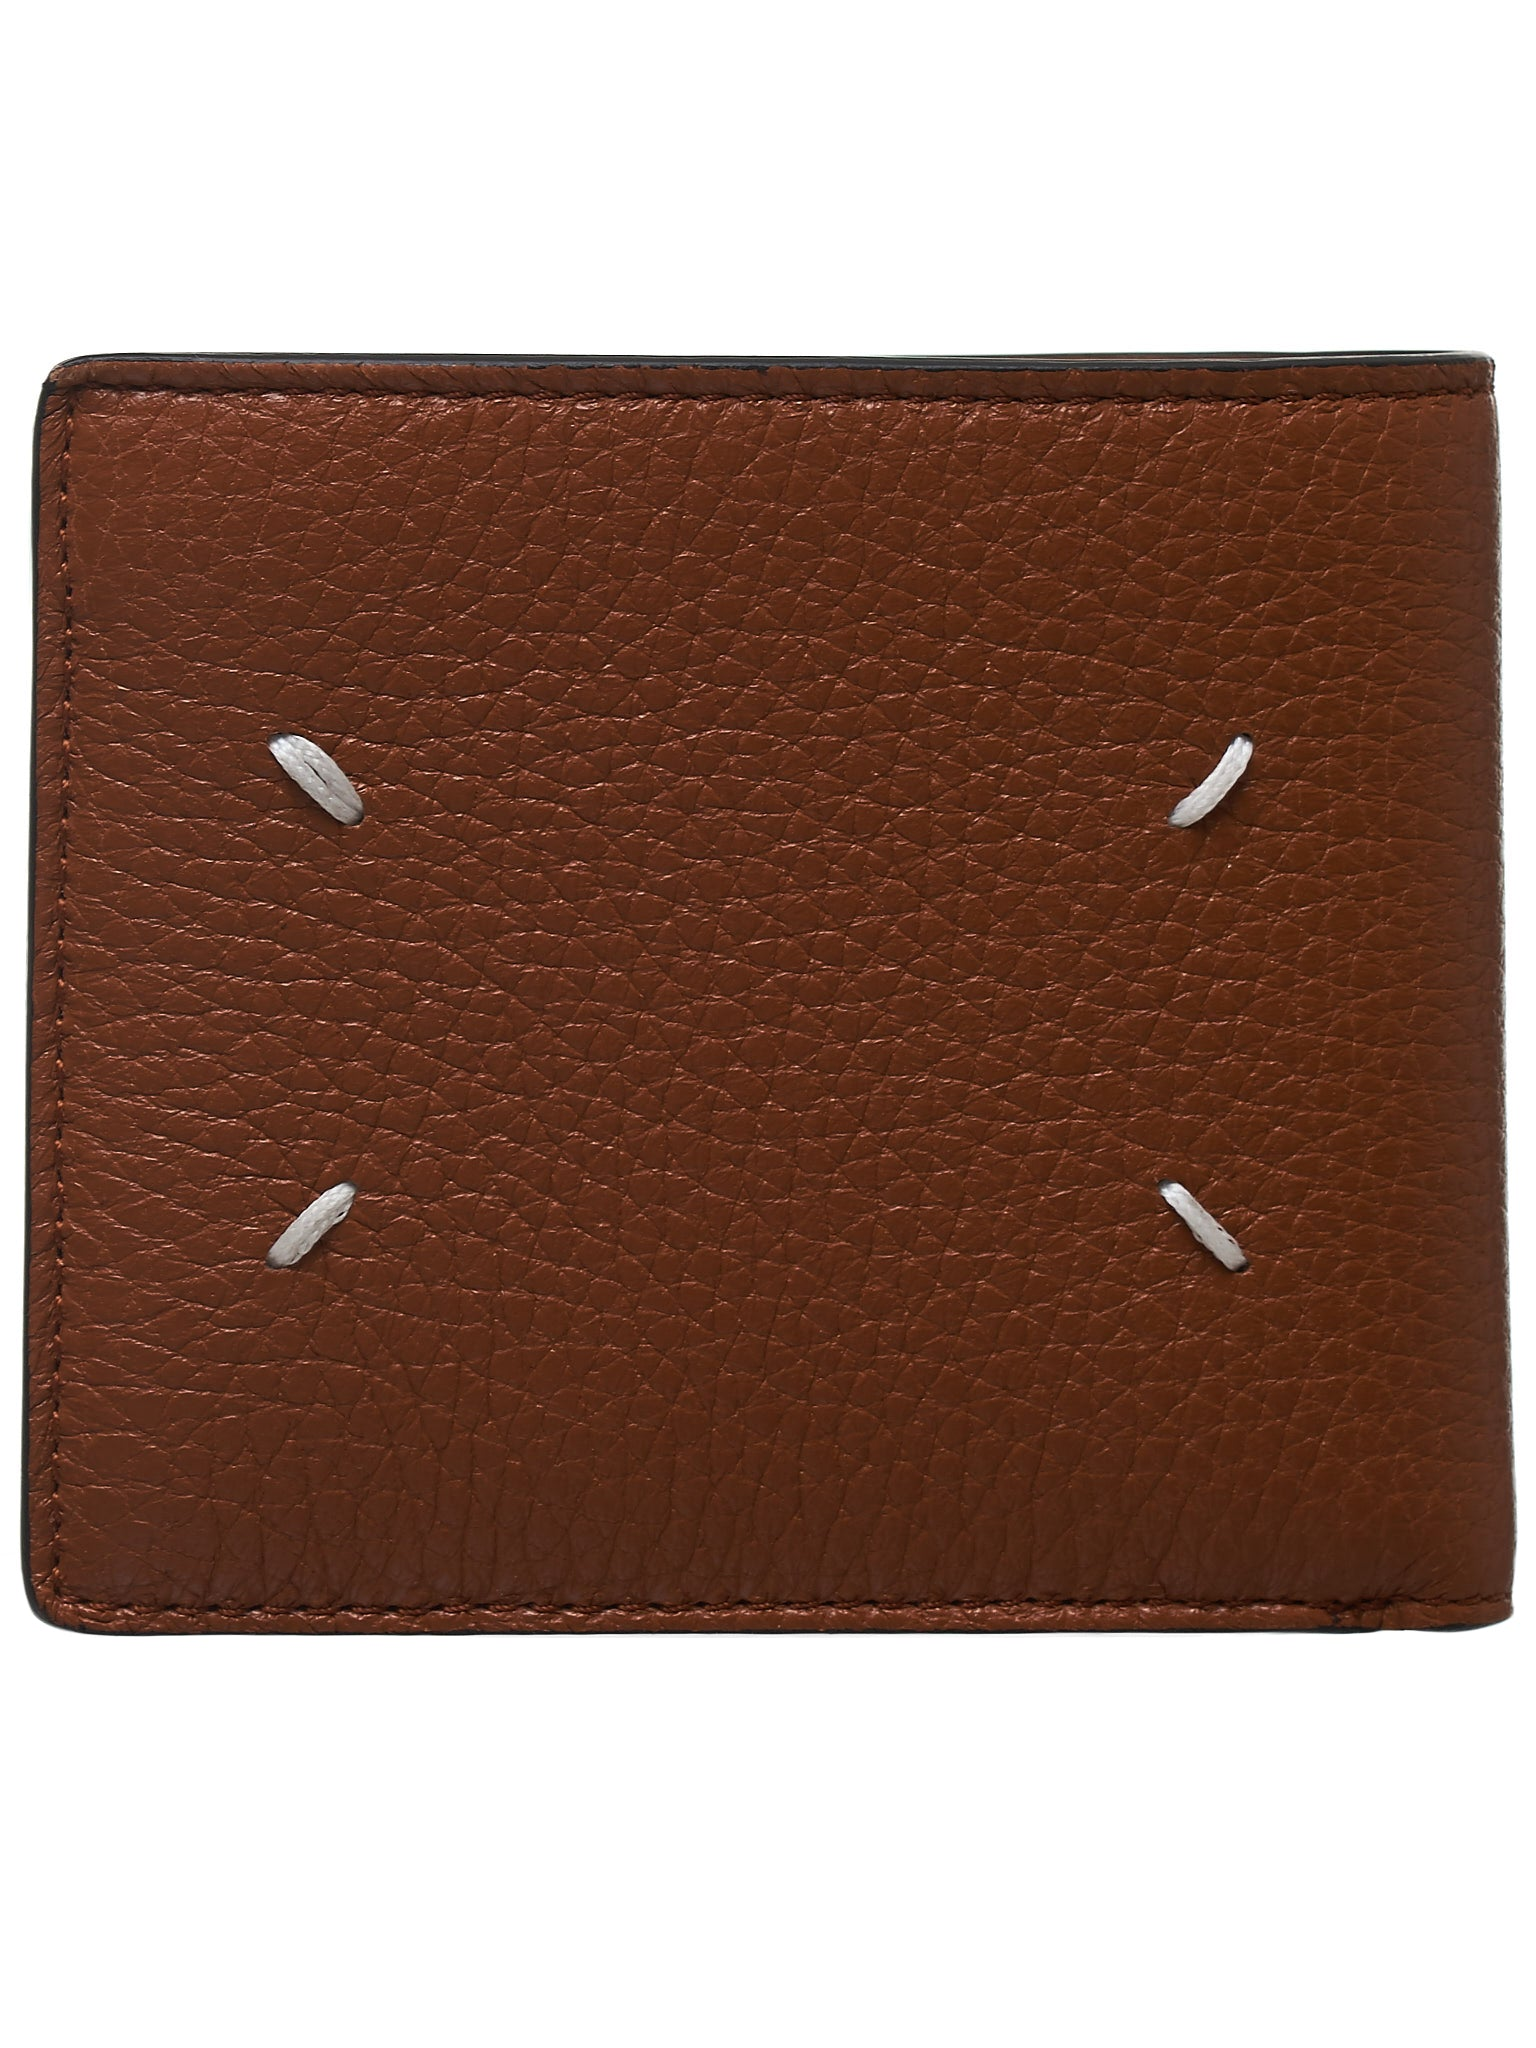 Leather Tri-Fold Wallet(S35UI0435-P2686-BROWN)